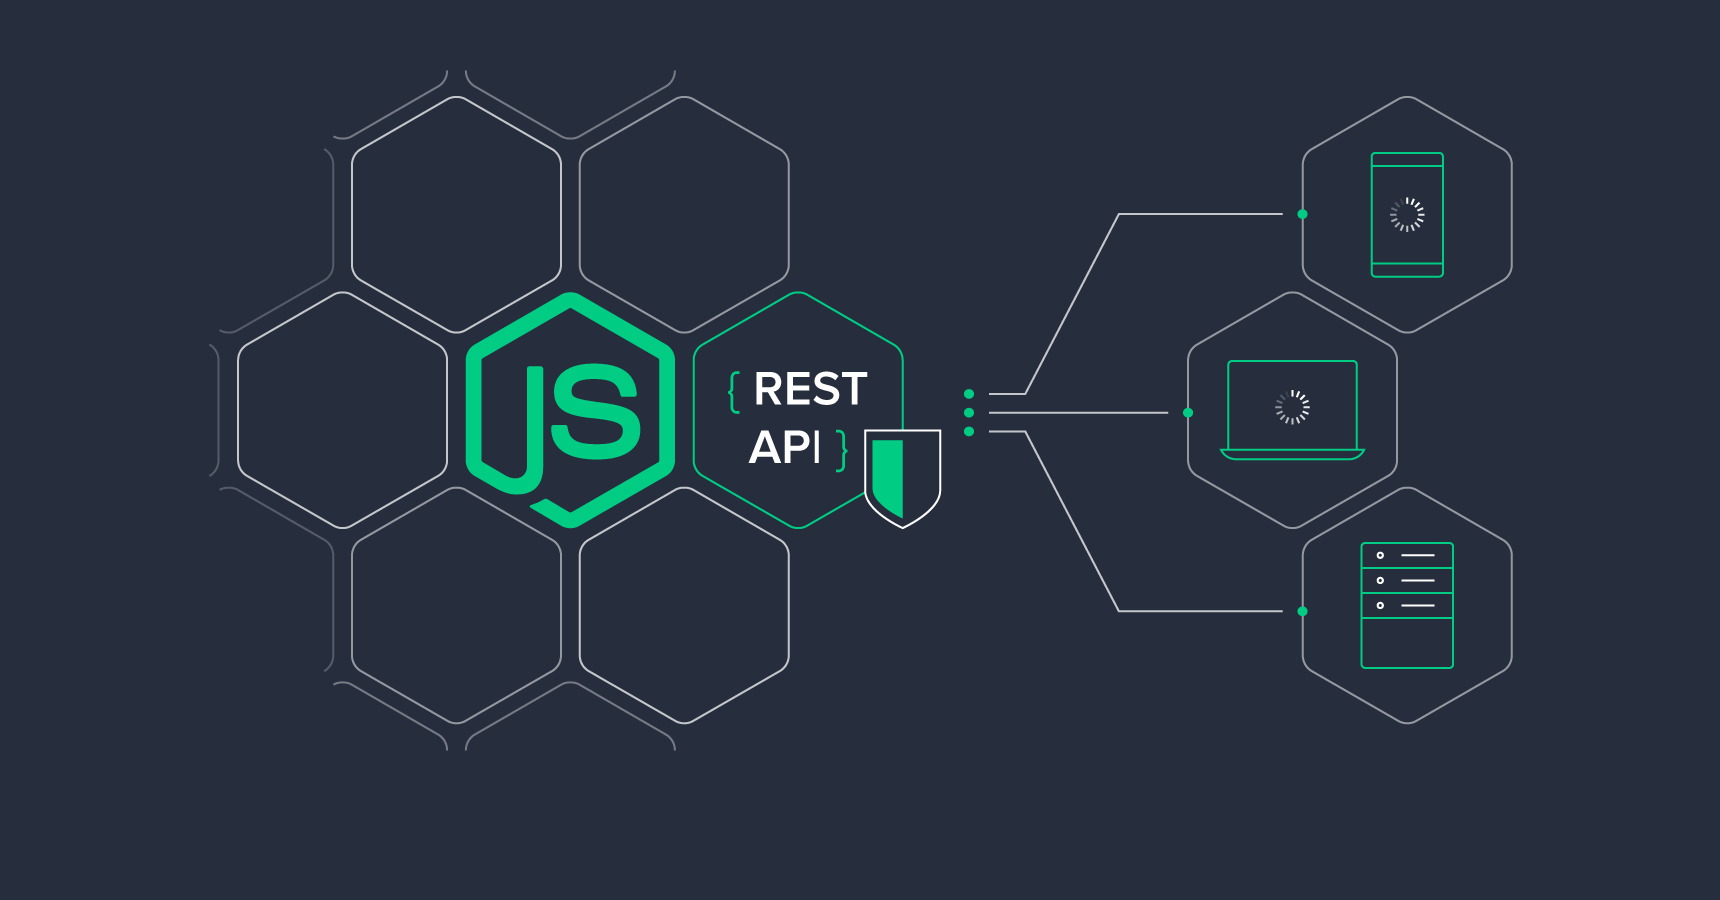 Develop RESTful API using Node JS, Express JS